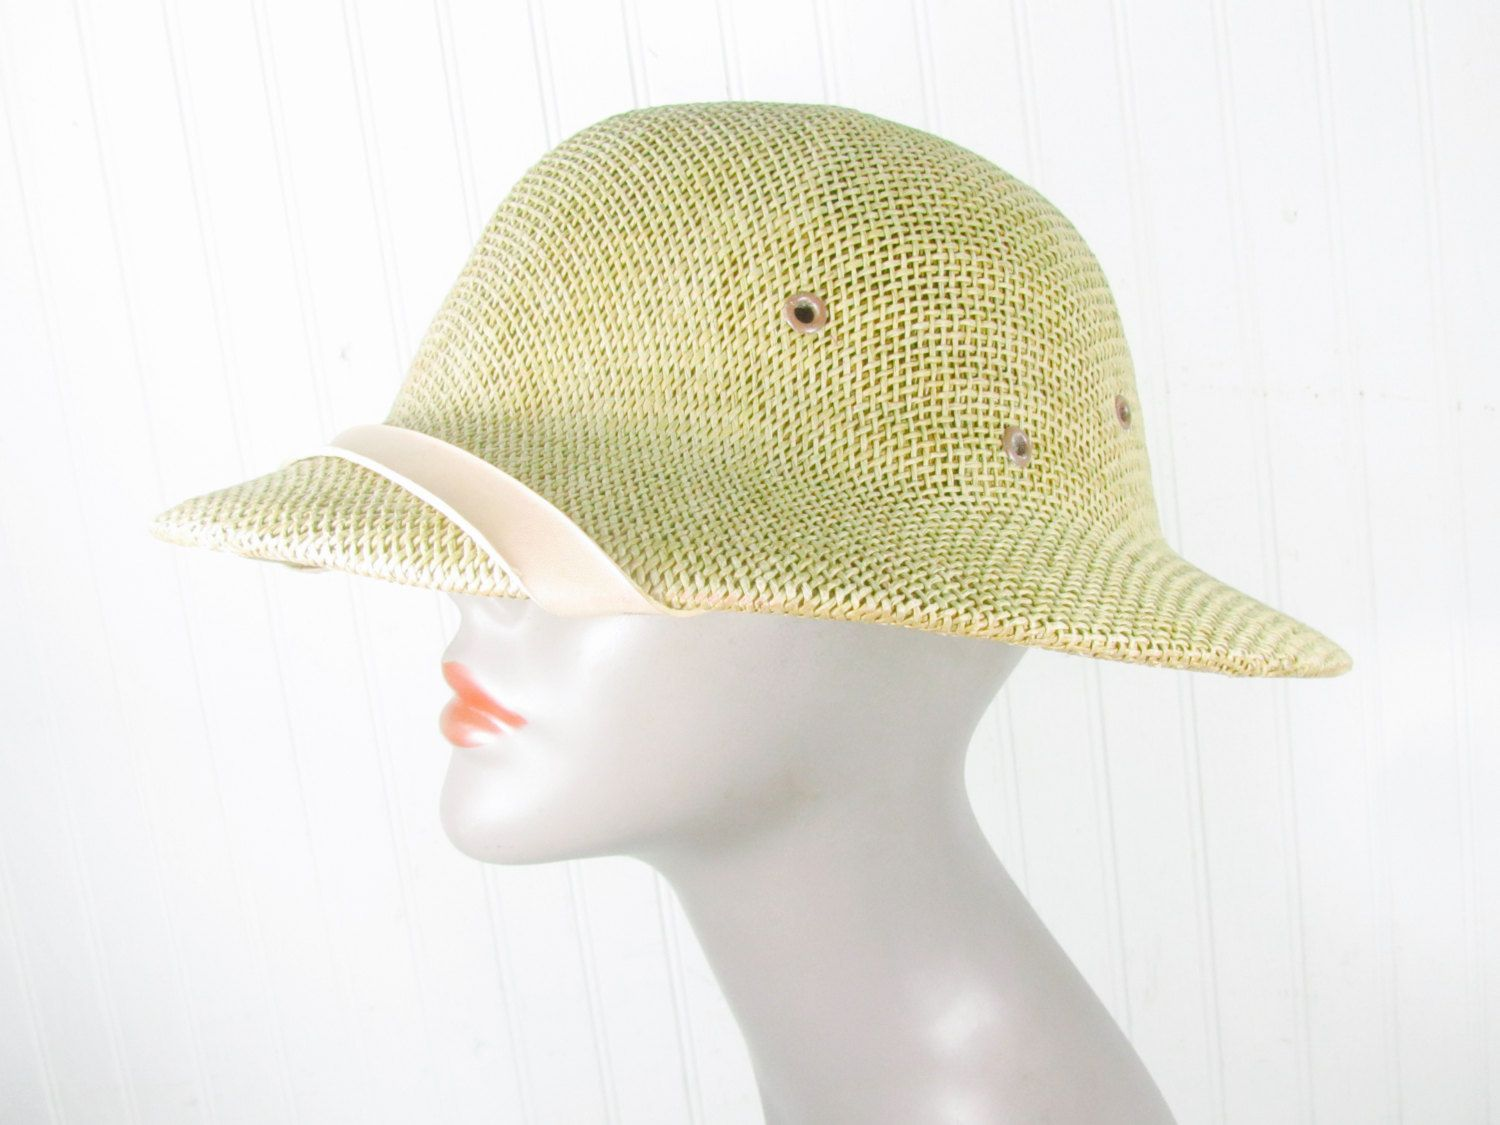 44f48beecf5536 Vintage Hat,hard hat,straw hat, pith helmet,safari Hat,Mens Hat, Hat,1950s  fashion, sun hat,photo prop,movie by KarensChicNShabby on Etsy